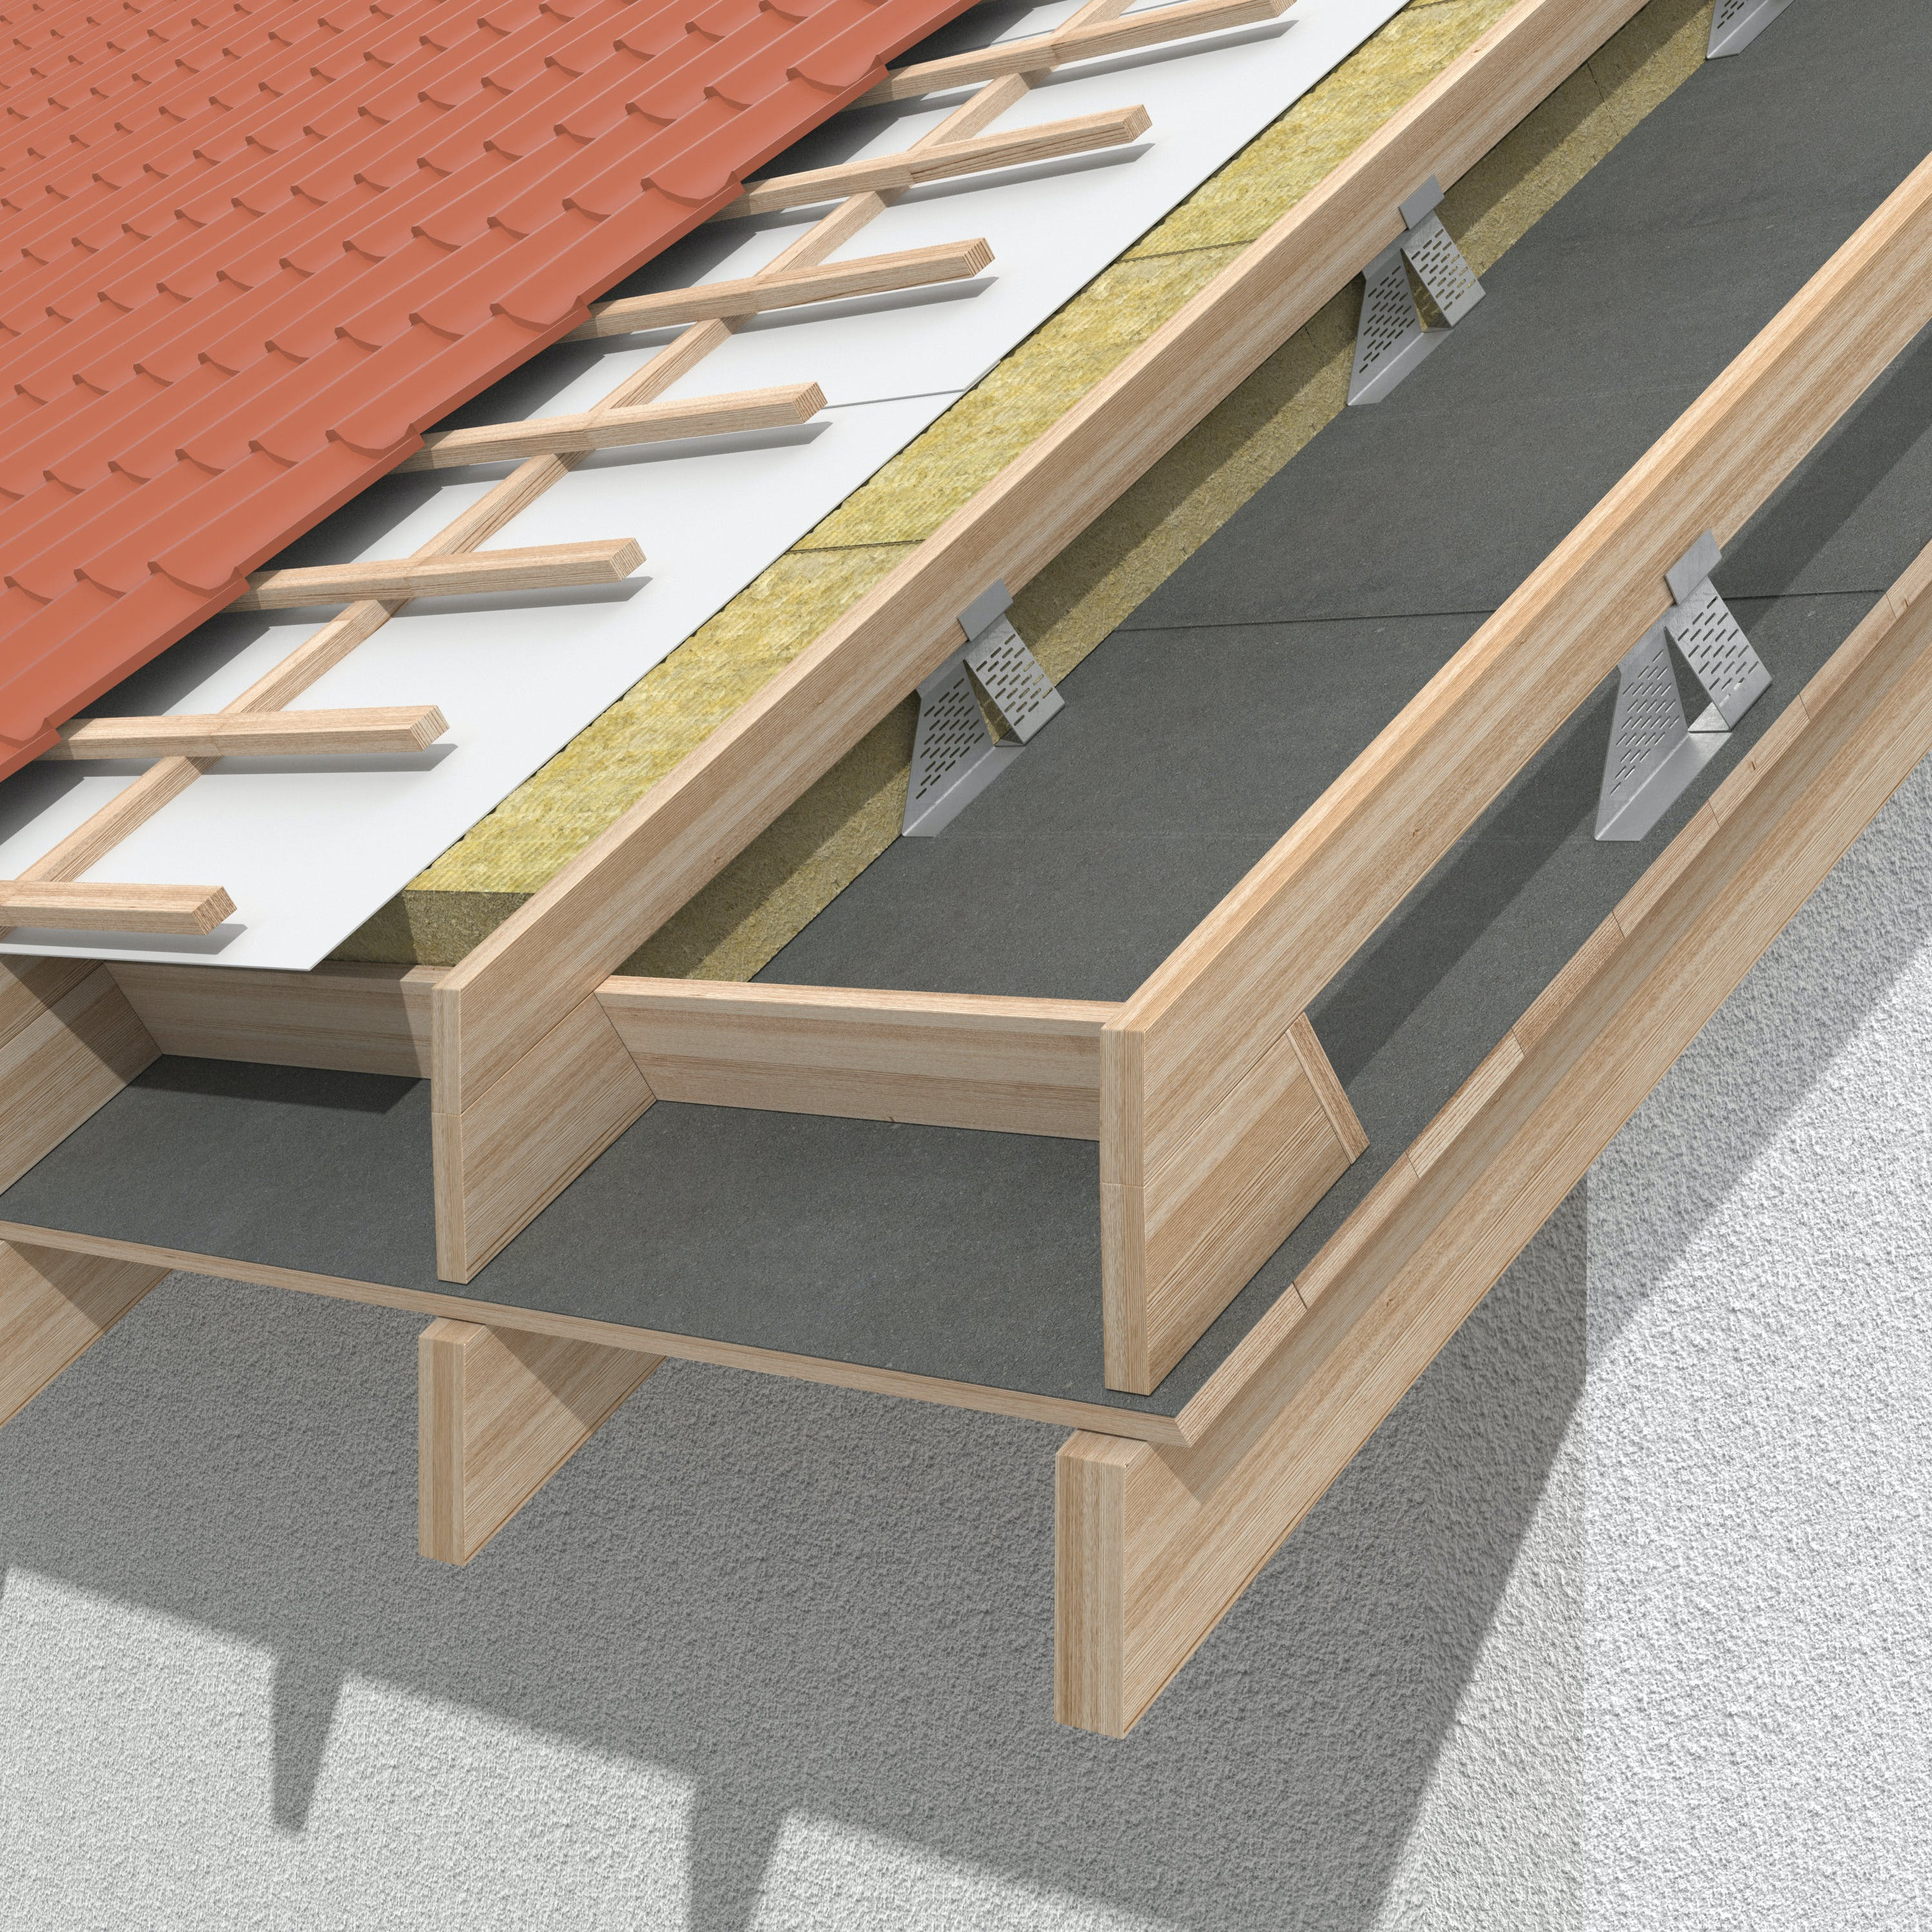 Piched roof insulation, external insulation